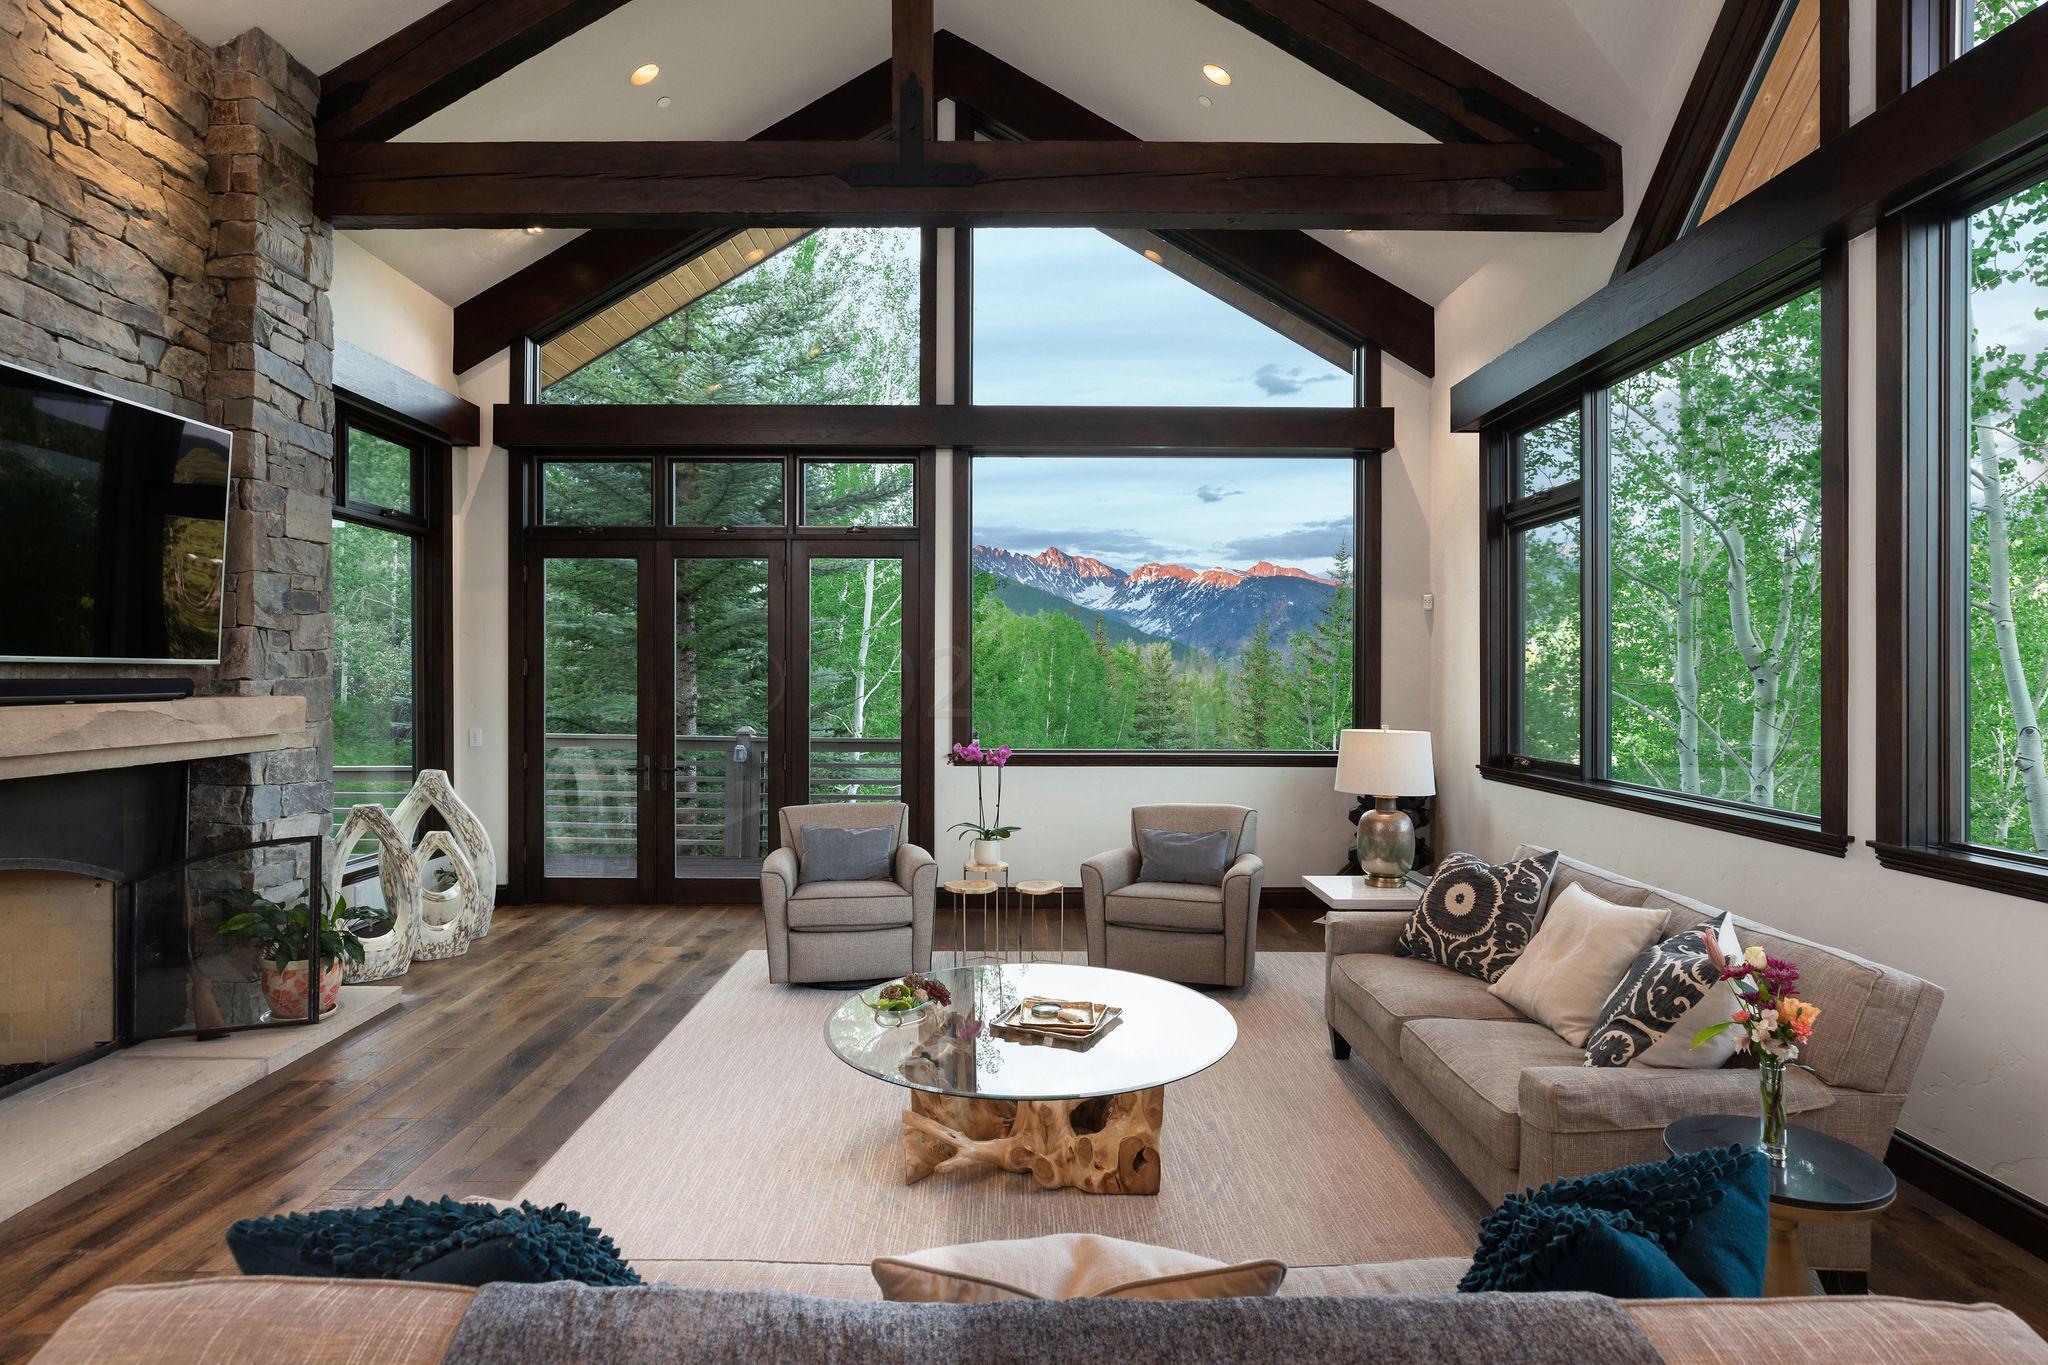 Seldom does a home of this magnitude, quality and character with an unparalleled location in Vail come to market. Freshly remodeled by Scott Turnipseed AIA, 1487 Buffehr Creek Road occupies one of the most unique 0.86 acre home sites in Eagle County. Surrounded on three sides by national forest land and endowed with ''in your face'' Gore Range and Vail to Beaver Creek ski mountain views with absolutely no I-70 impact. Extensive outdoor entertaining space with ample cascading water displays enhance absolute privacy amid spacious decks, yard area and rock gardens. Ascend a custom glass elevator to the main living level with open, flowing gourmet kitchen, dining and great room spaces surrounded by glass-encased views in all directions. You will not find another home with this extraordinary combination of features in Vail, Colorado. We look forward to introducing you to a spectacular home very few people have ever seen.